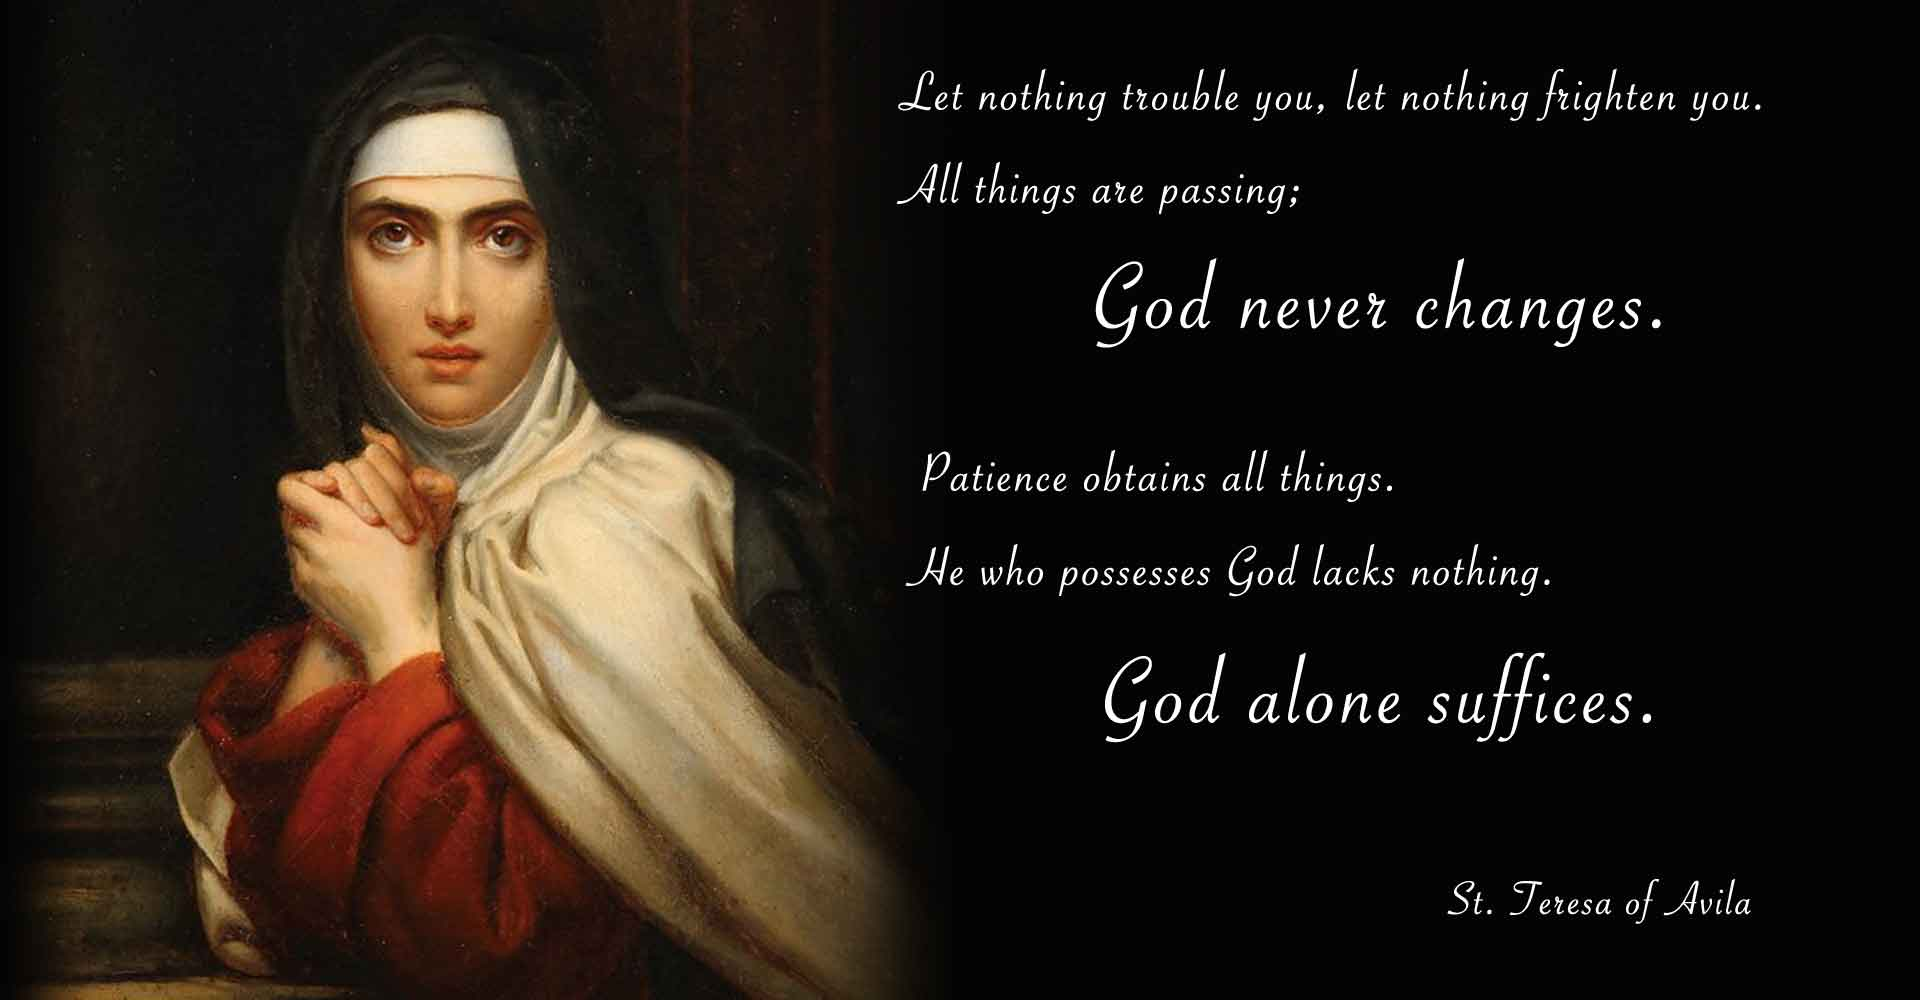 St. Teresa of Avila Doctor of Prayer